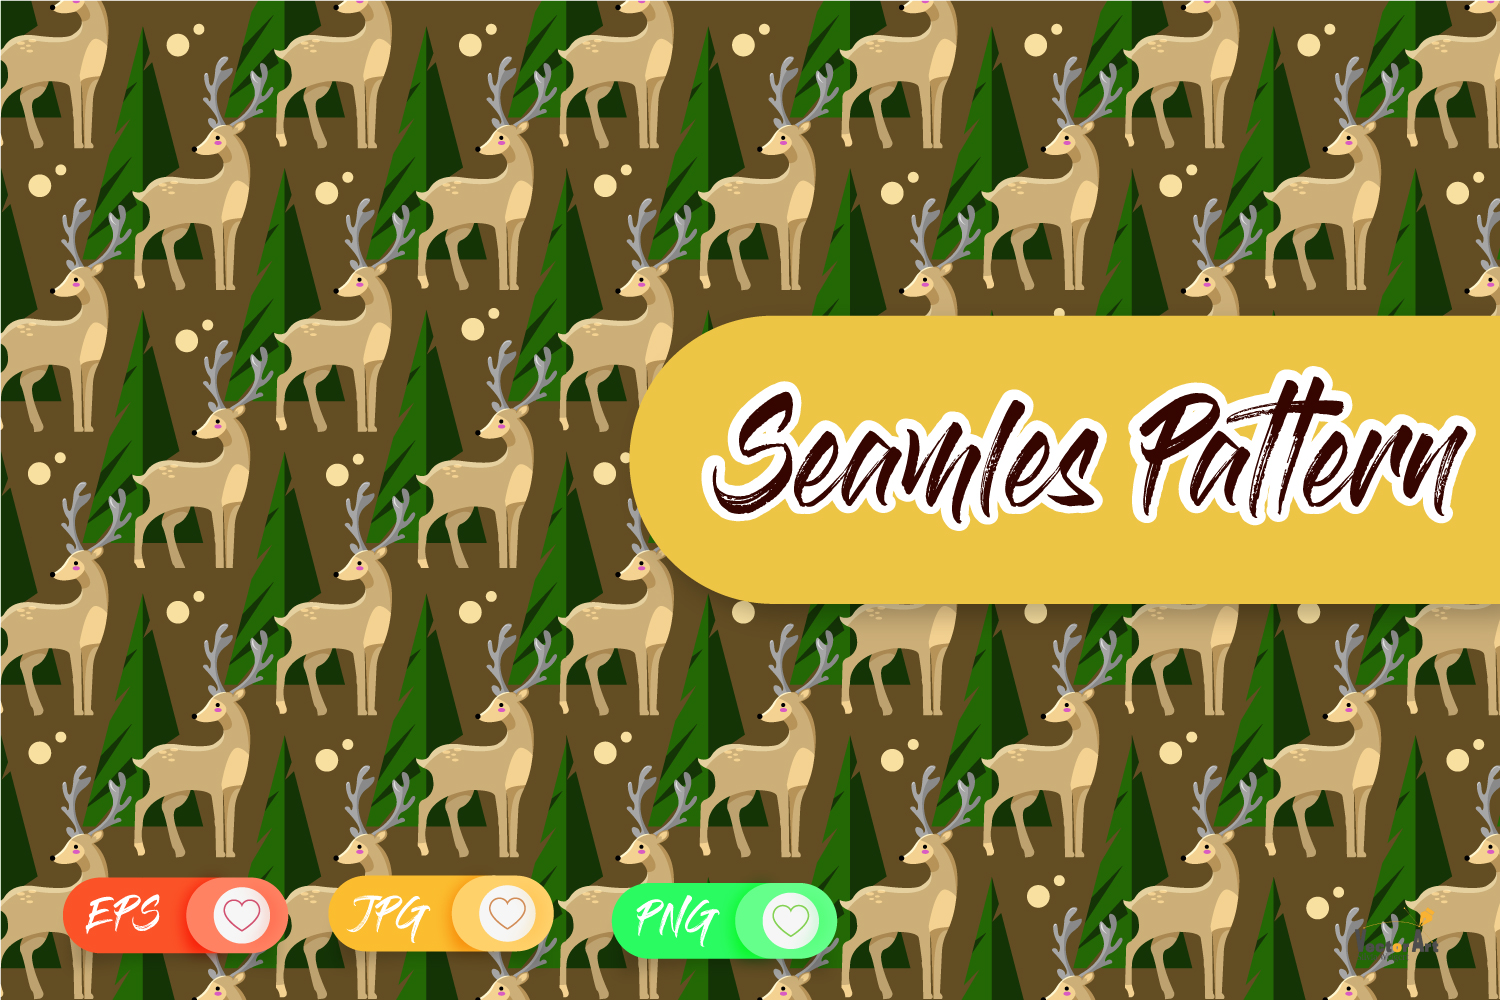 Crafter Set - DigiStamp - Seamless Pattern - Background example image 5